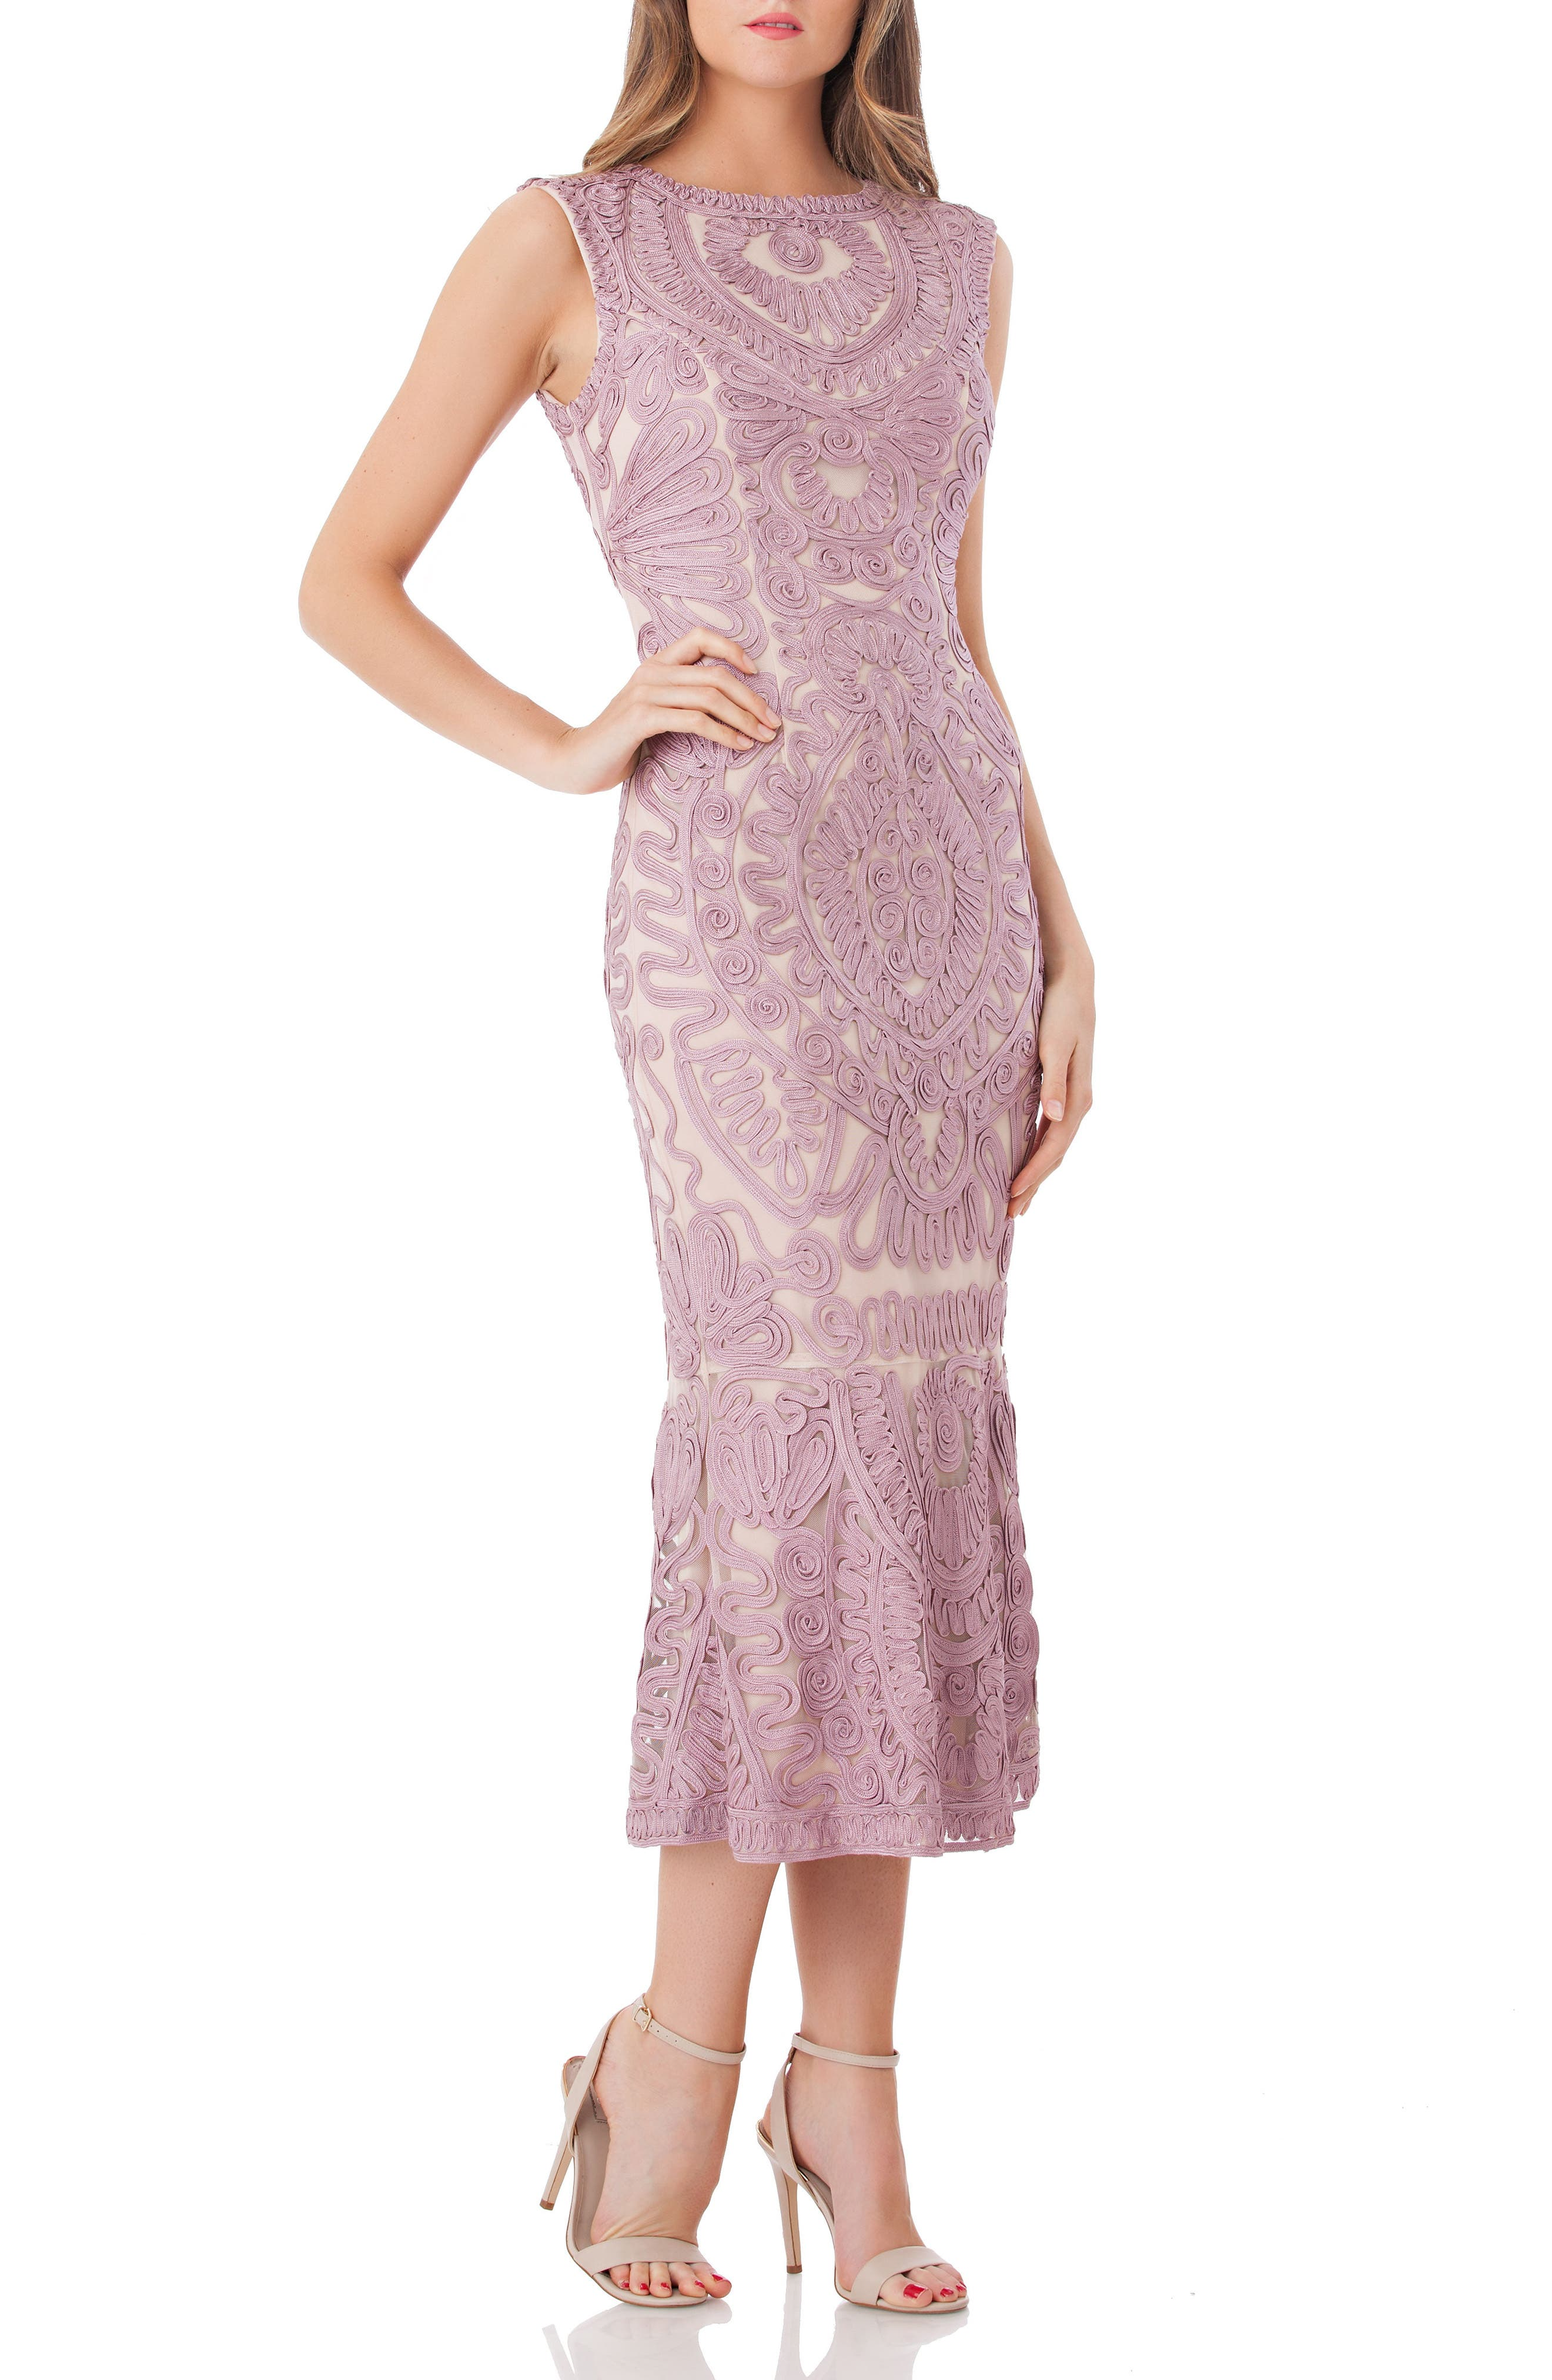 Emejing Lilac Dresses For Weddings Pictures Styles